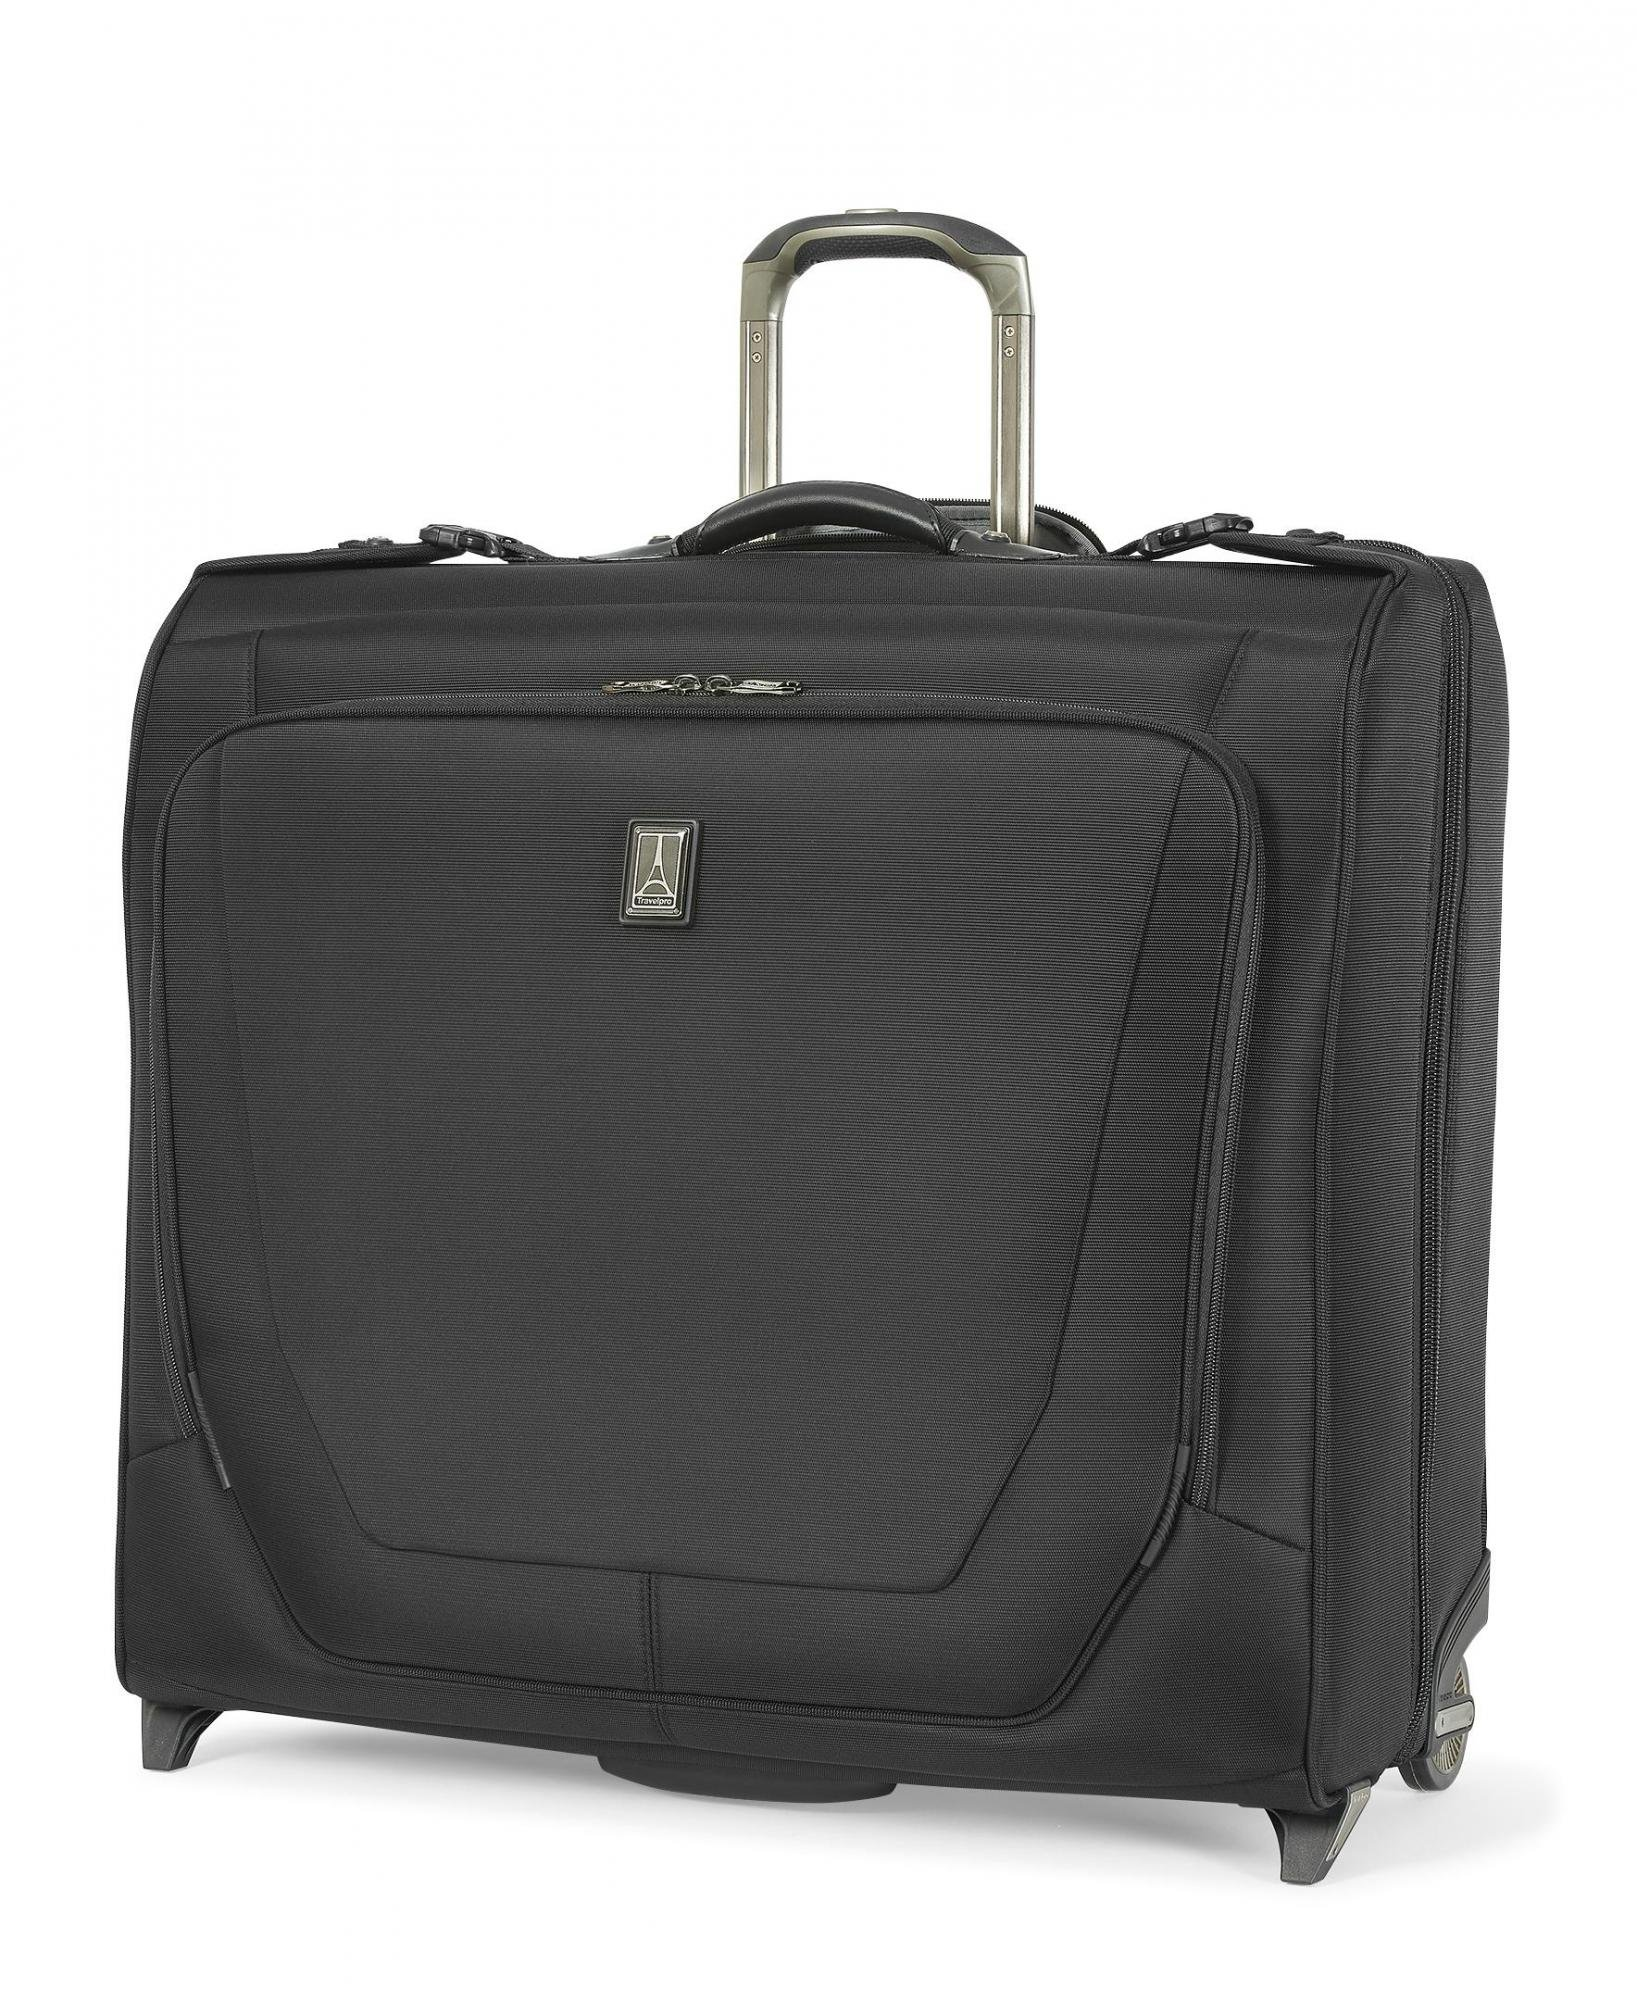 Travelpro Crew 11 50'' Garment Bag, Black by Travelpro